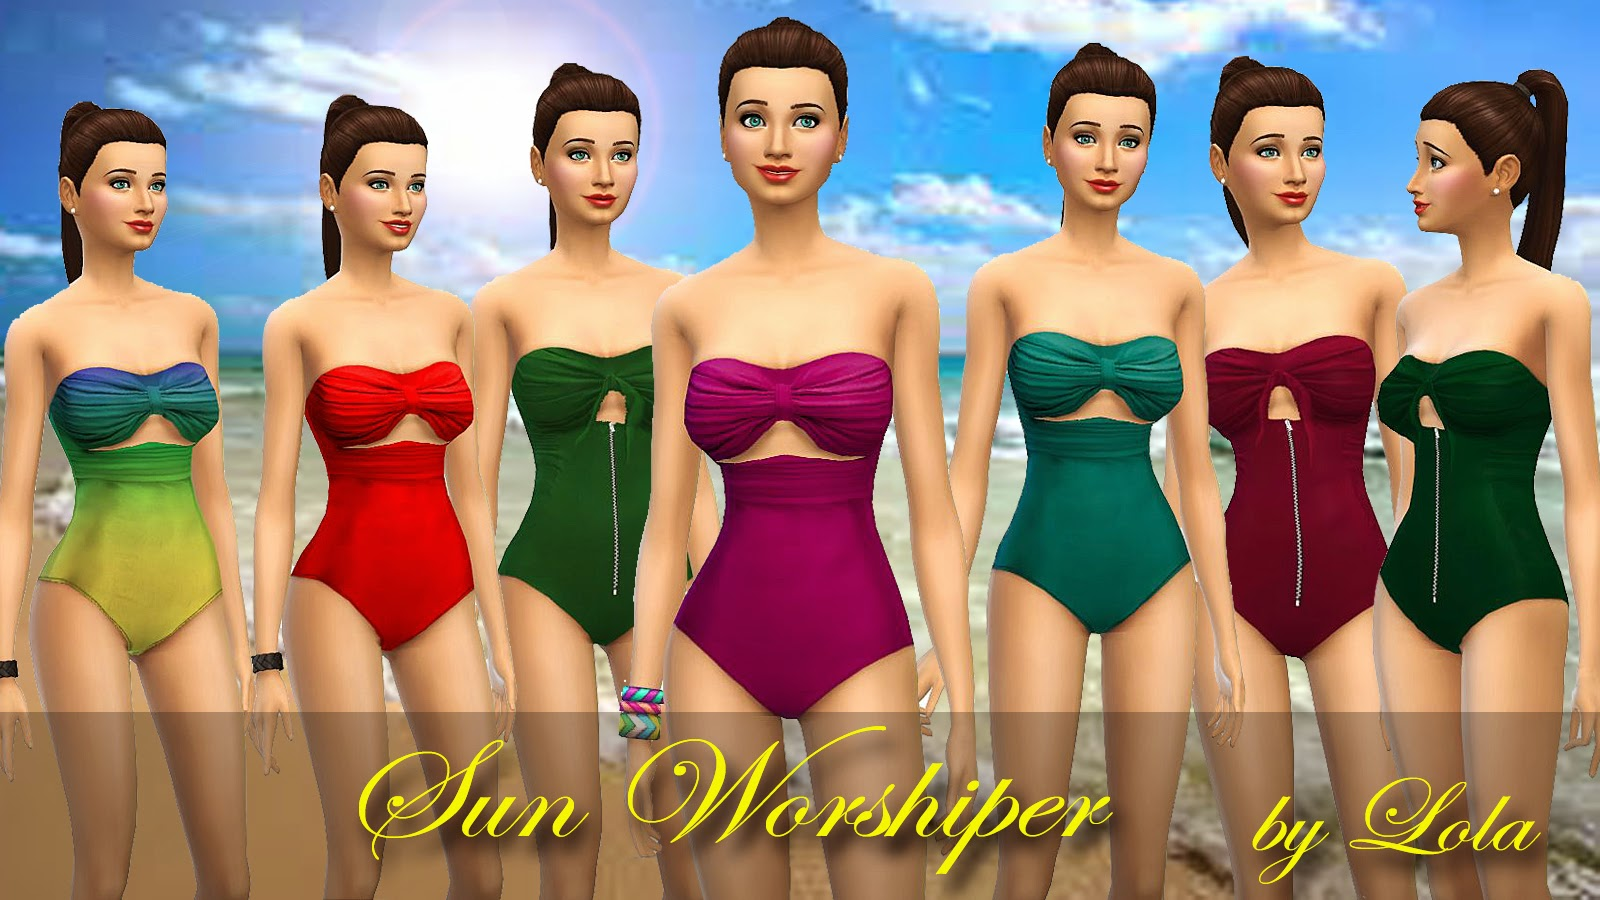 Sun Worshiper Swimsuit by Lola